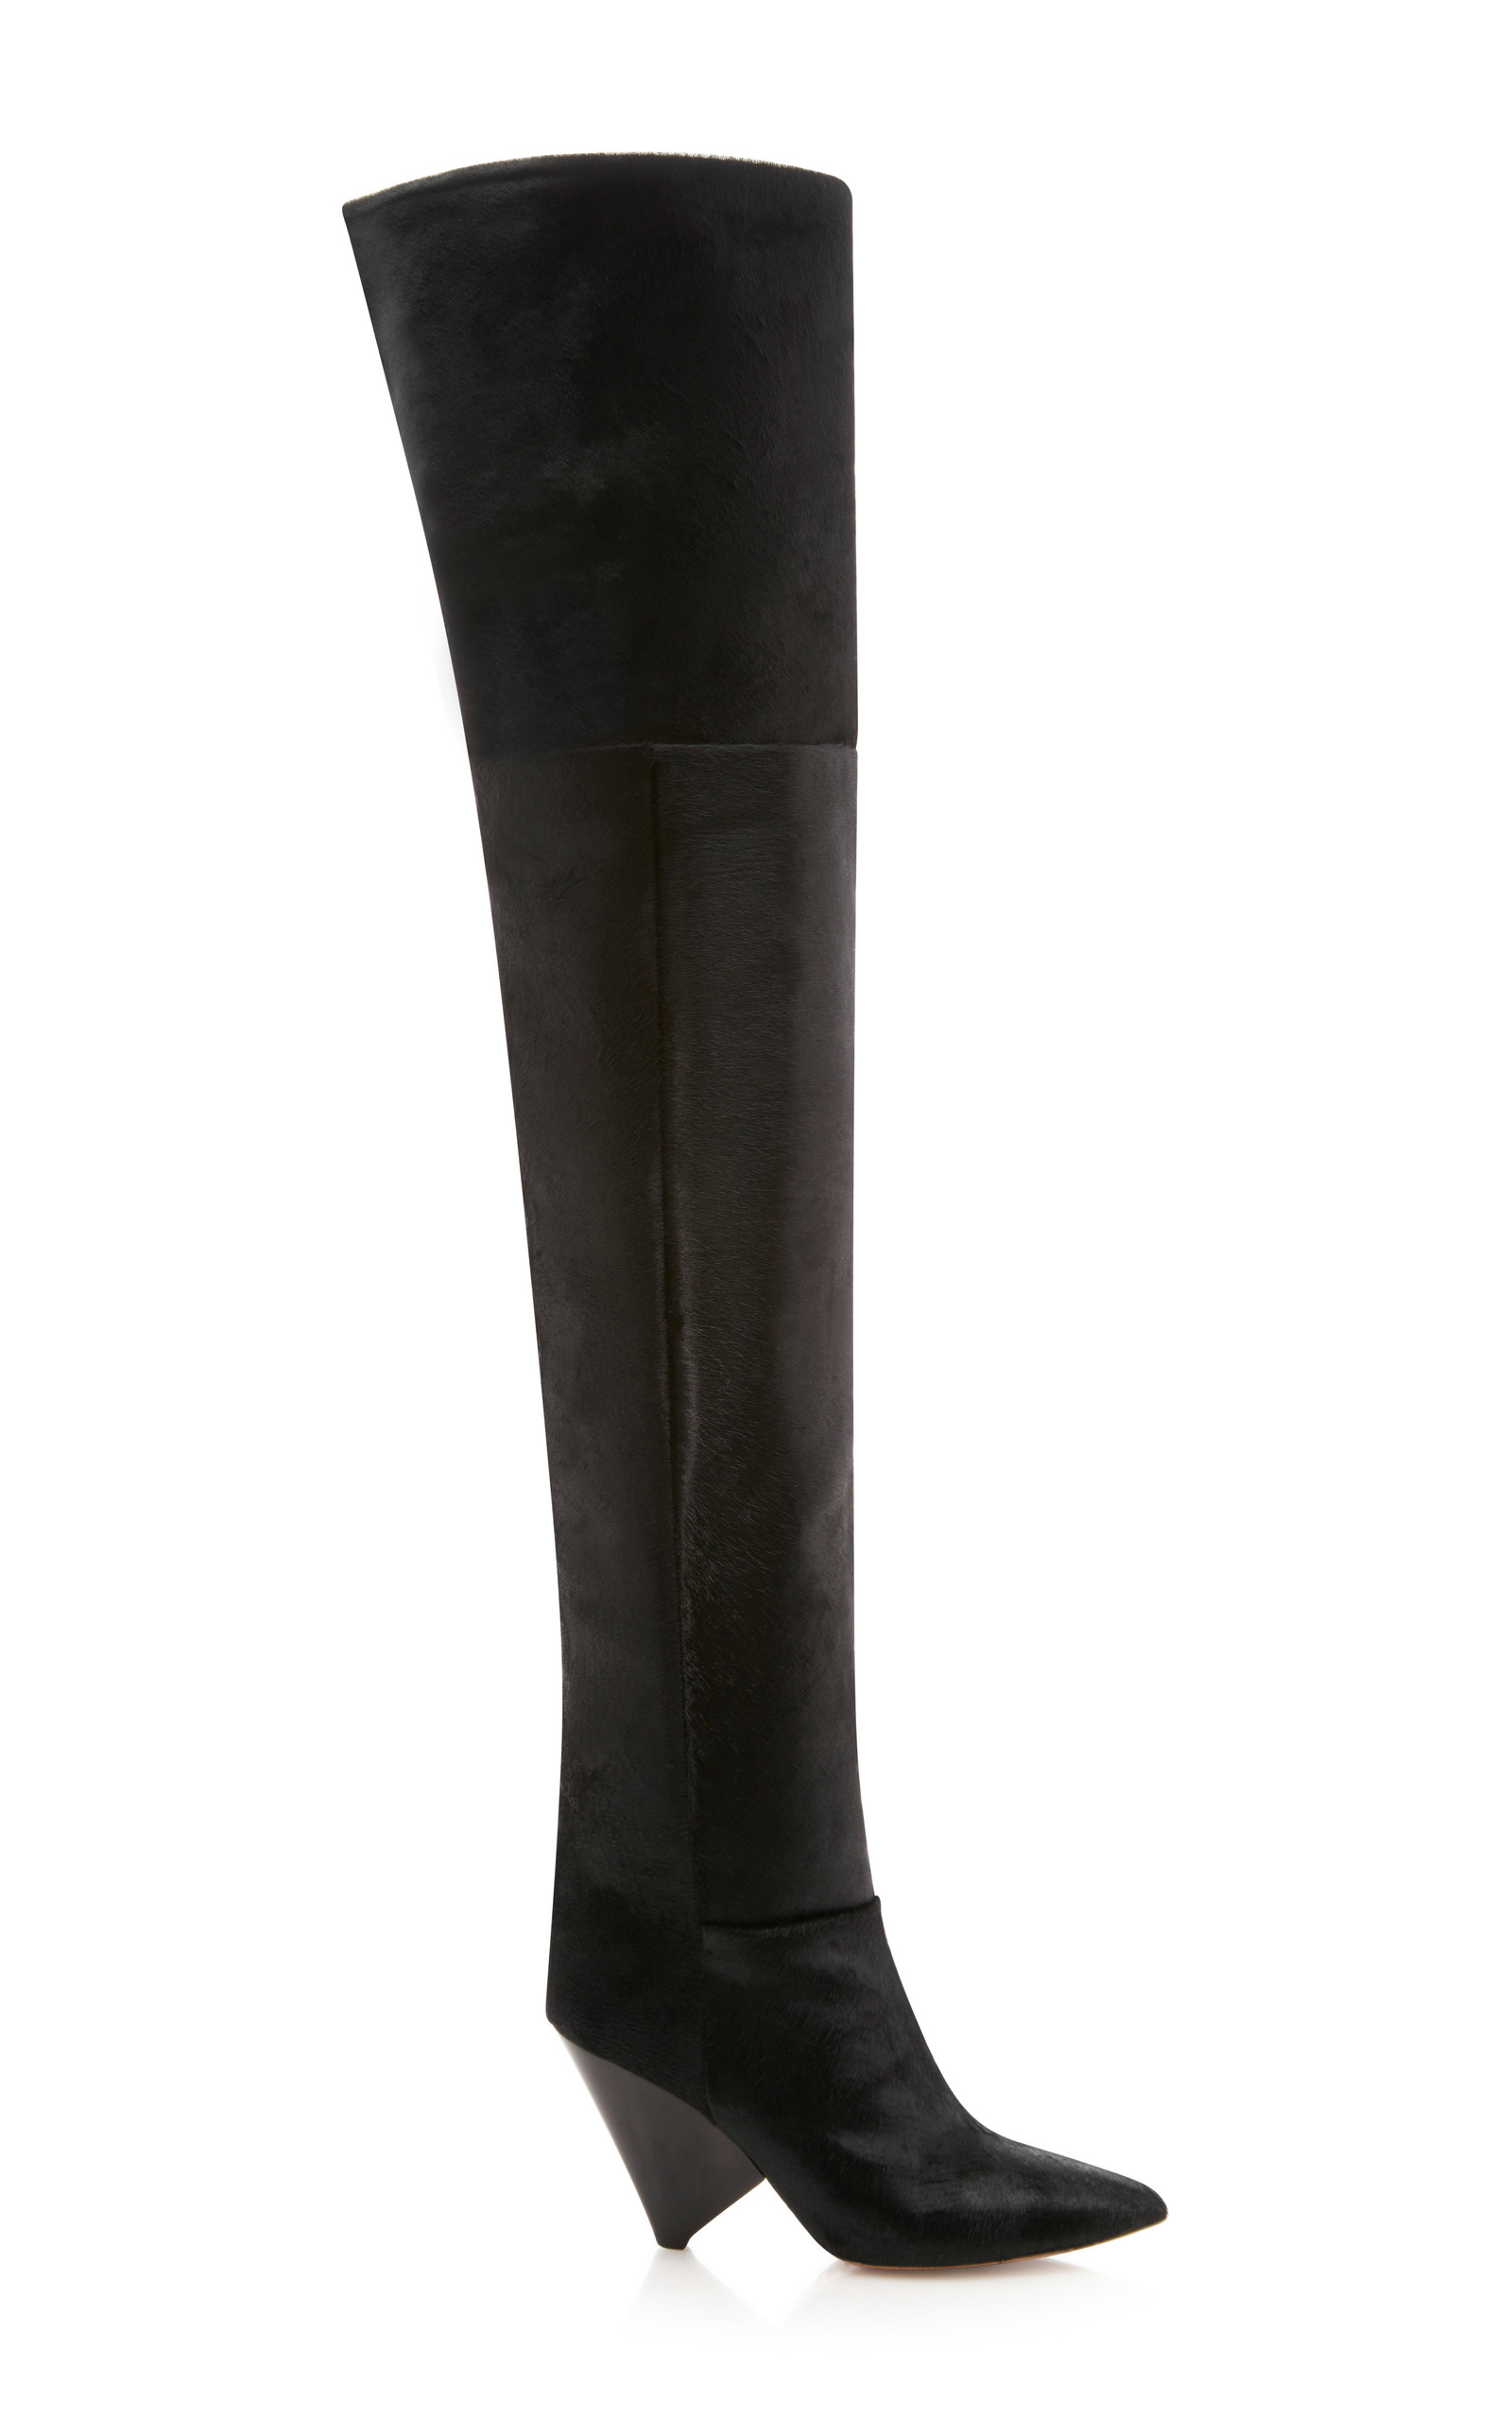 cefb7641402 Isabel MarantLostynn Calf Hair Boot. CLOSE. Loading. Loading. Loading.  Loading